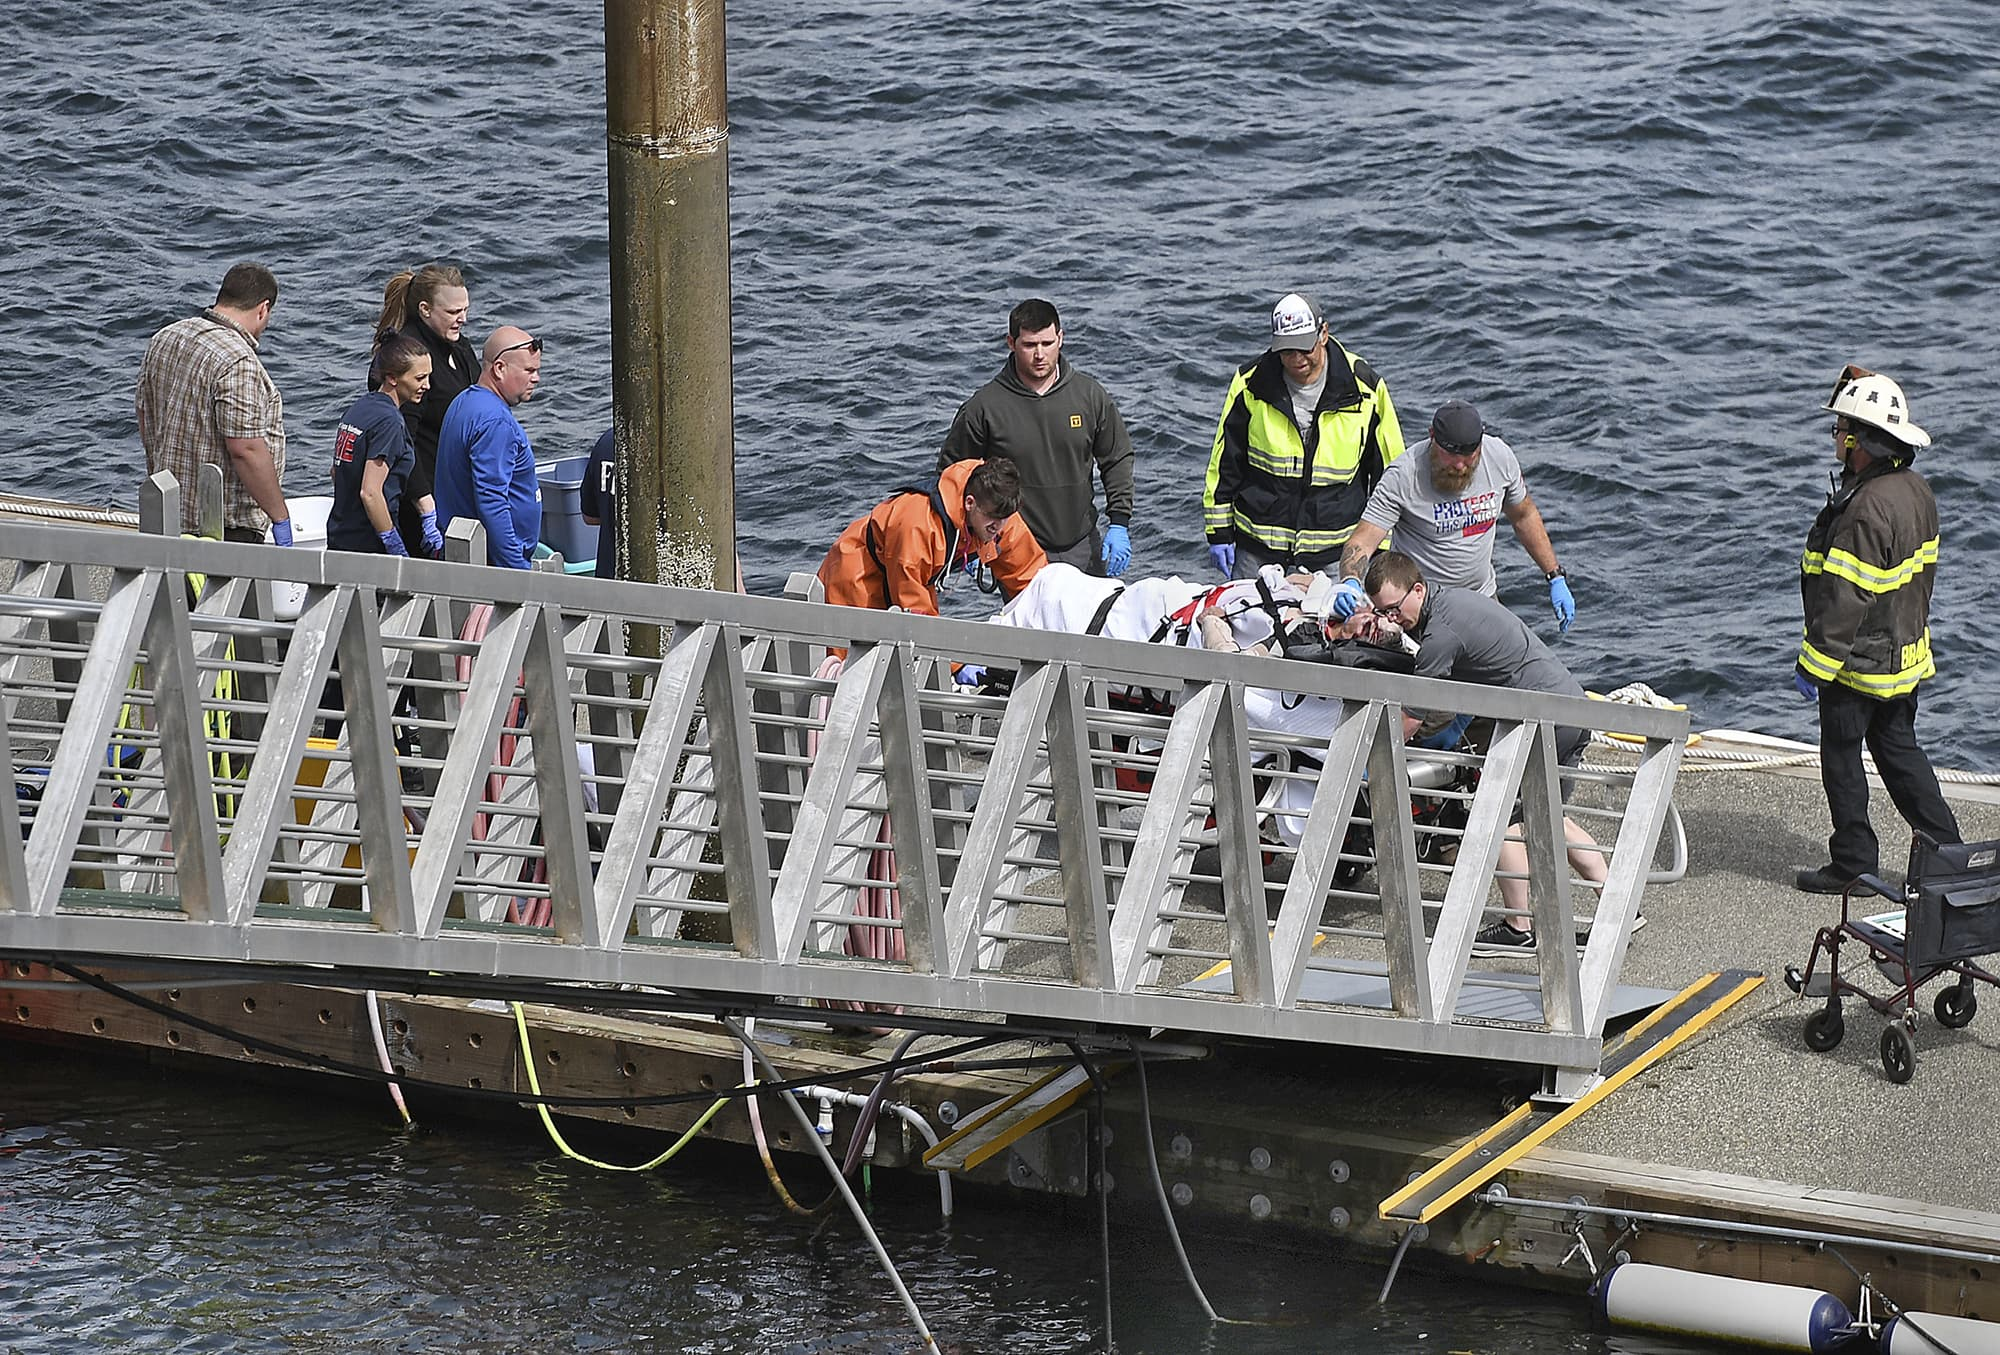 NTSB to investigate in Alaska after deadly midair sightseeing plane collision thumbnail